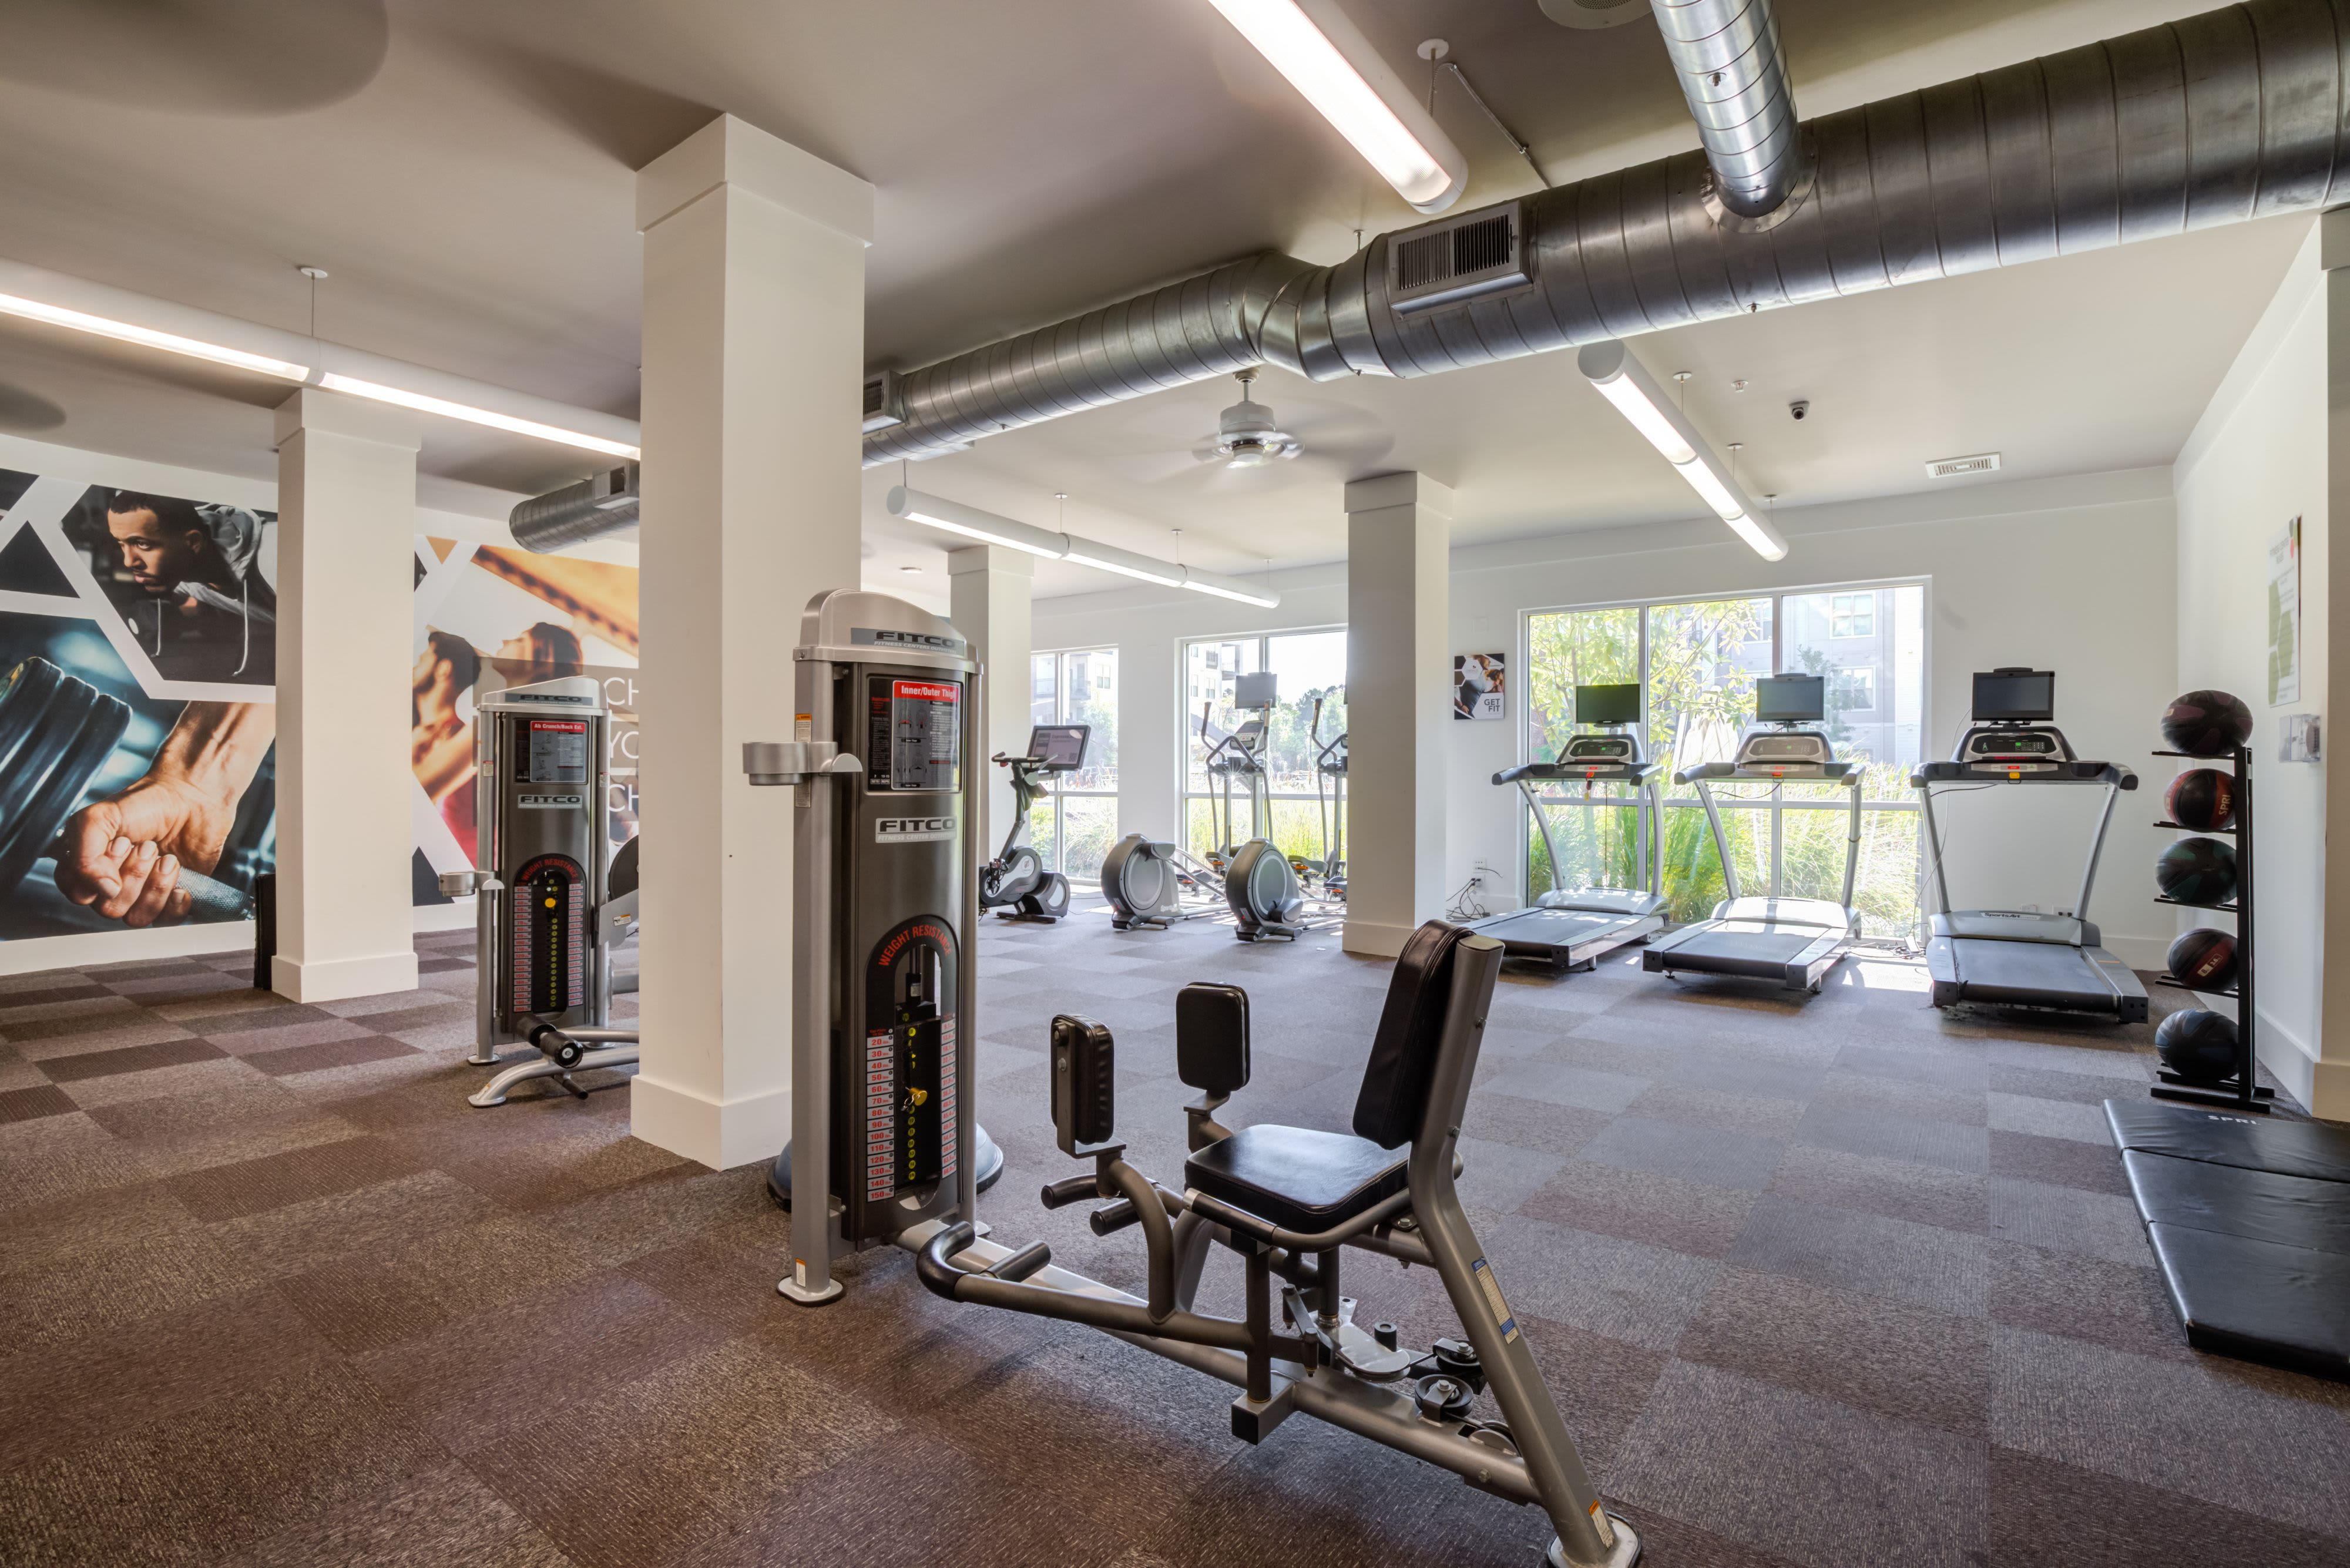 Fitness center at Celsius Apartment Homes in Charlotte, North Carolina